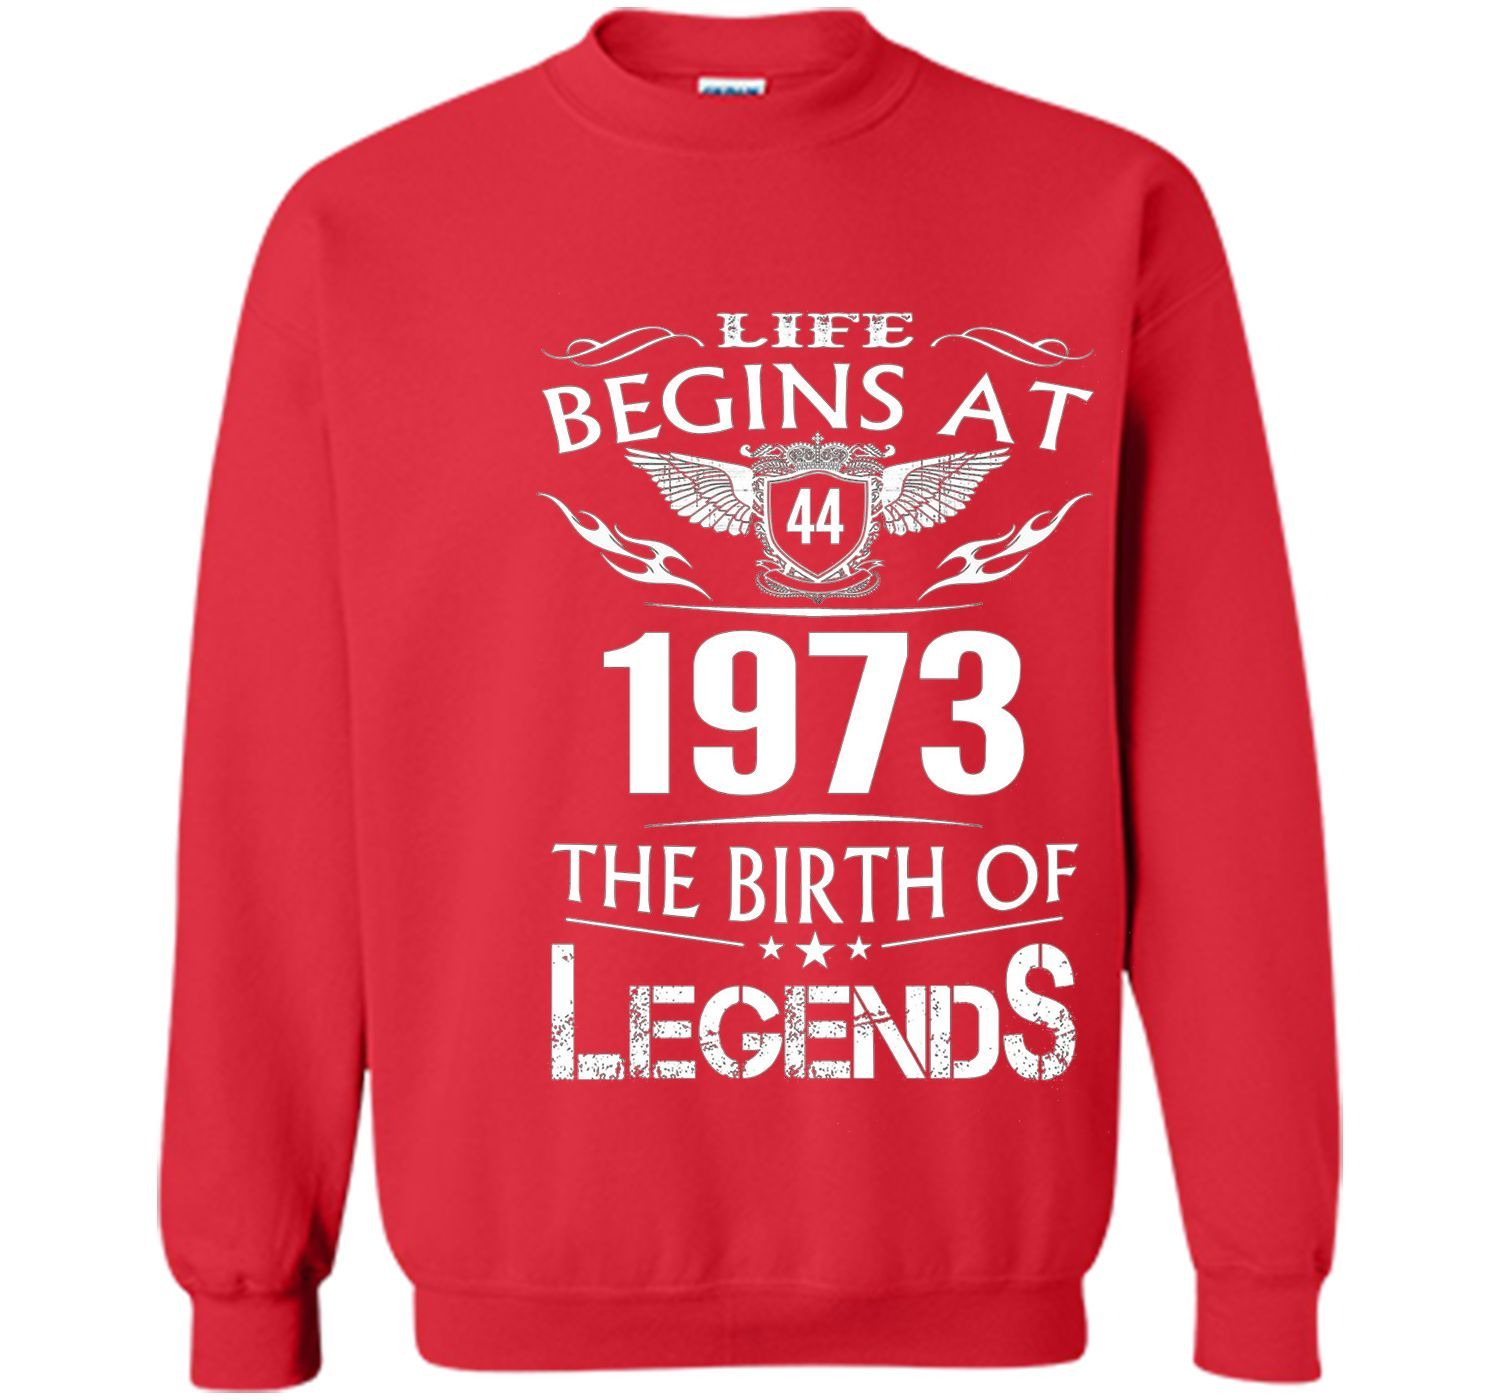 Life Begins At 44 1973 The Birth Of Legends T-Shirt cool shirt